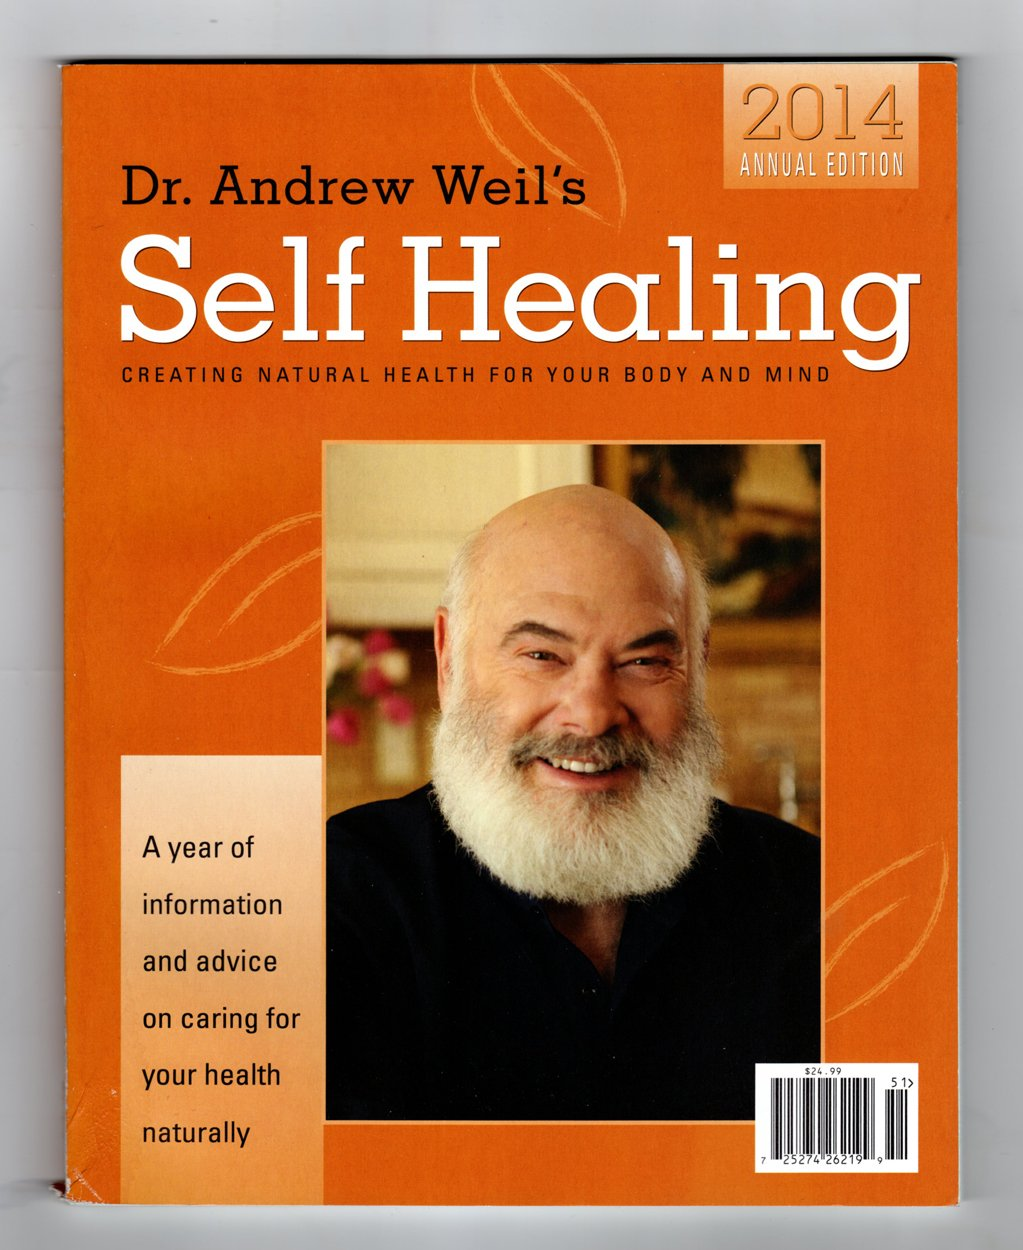 Dr Andrew Weil's Self Healing - 2014 Annual Edition - Creating Natural Health for your Body and Mind. pdf